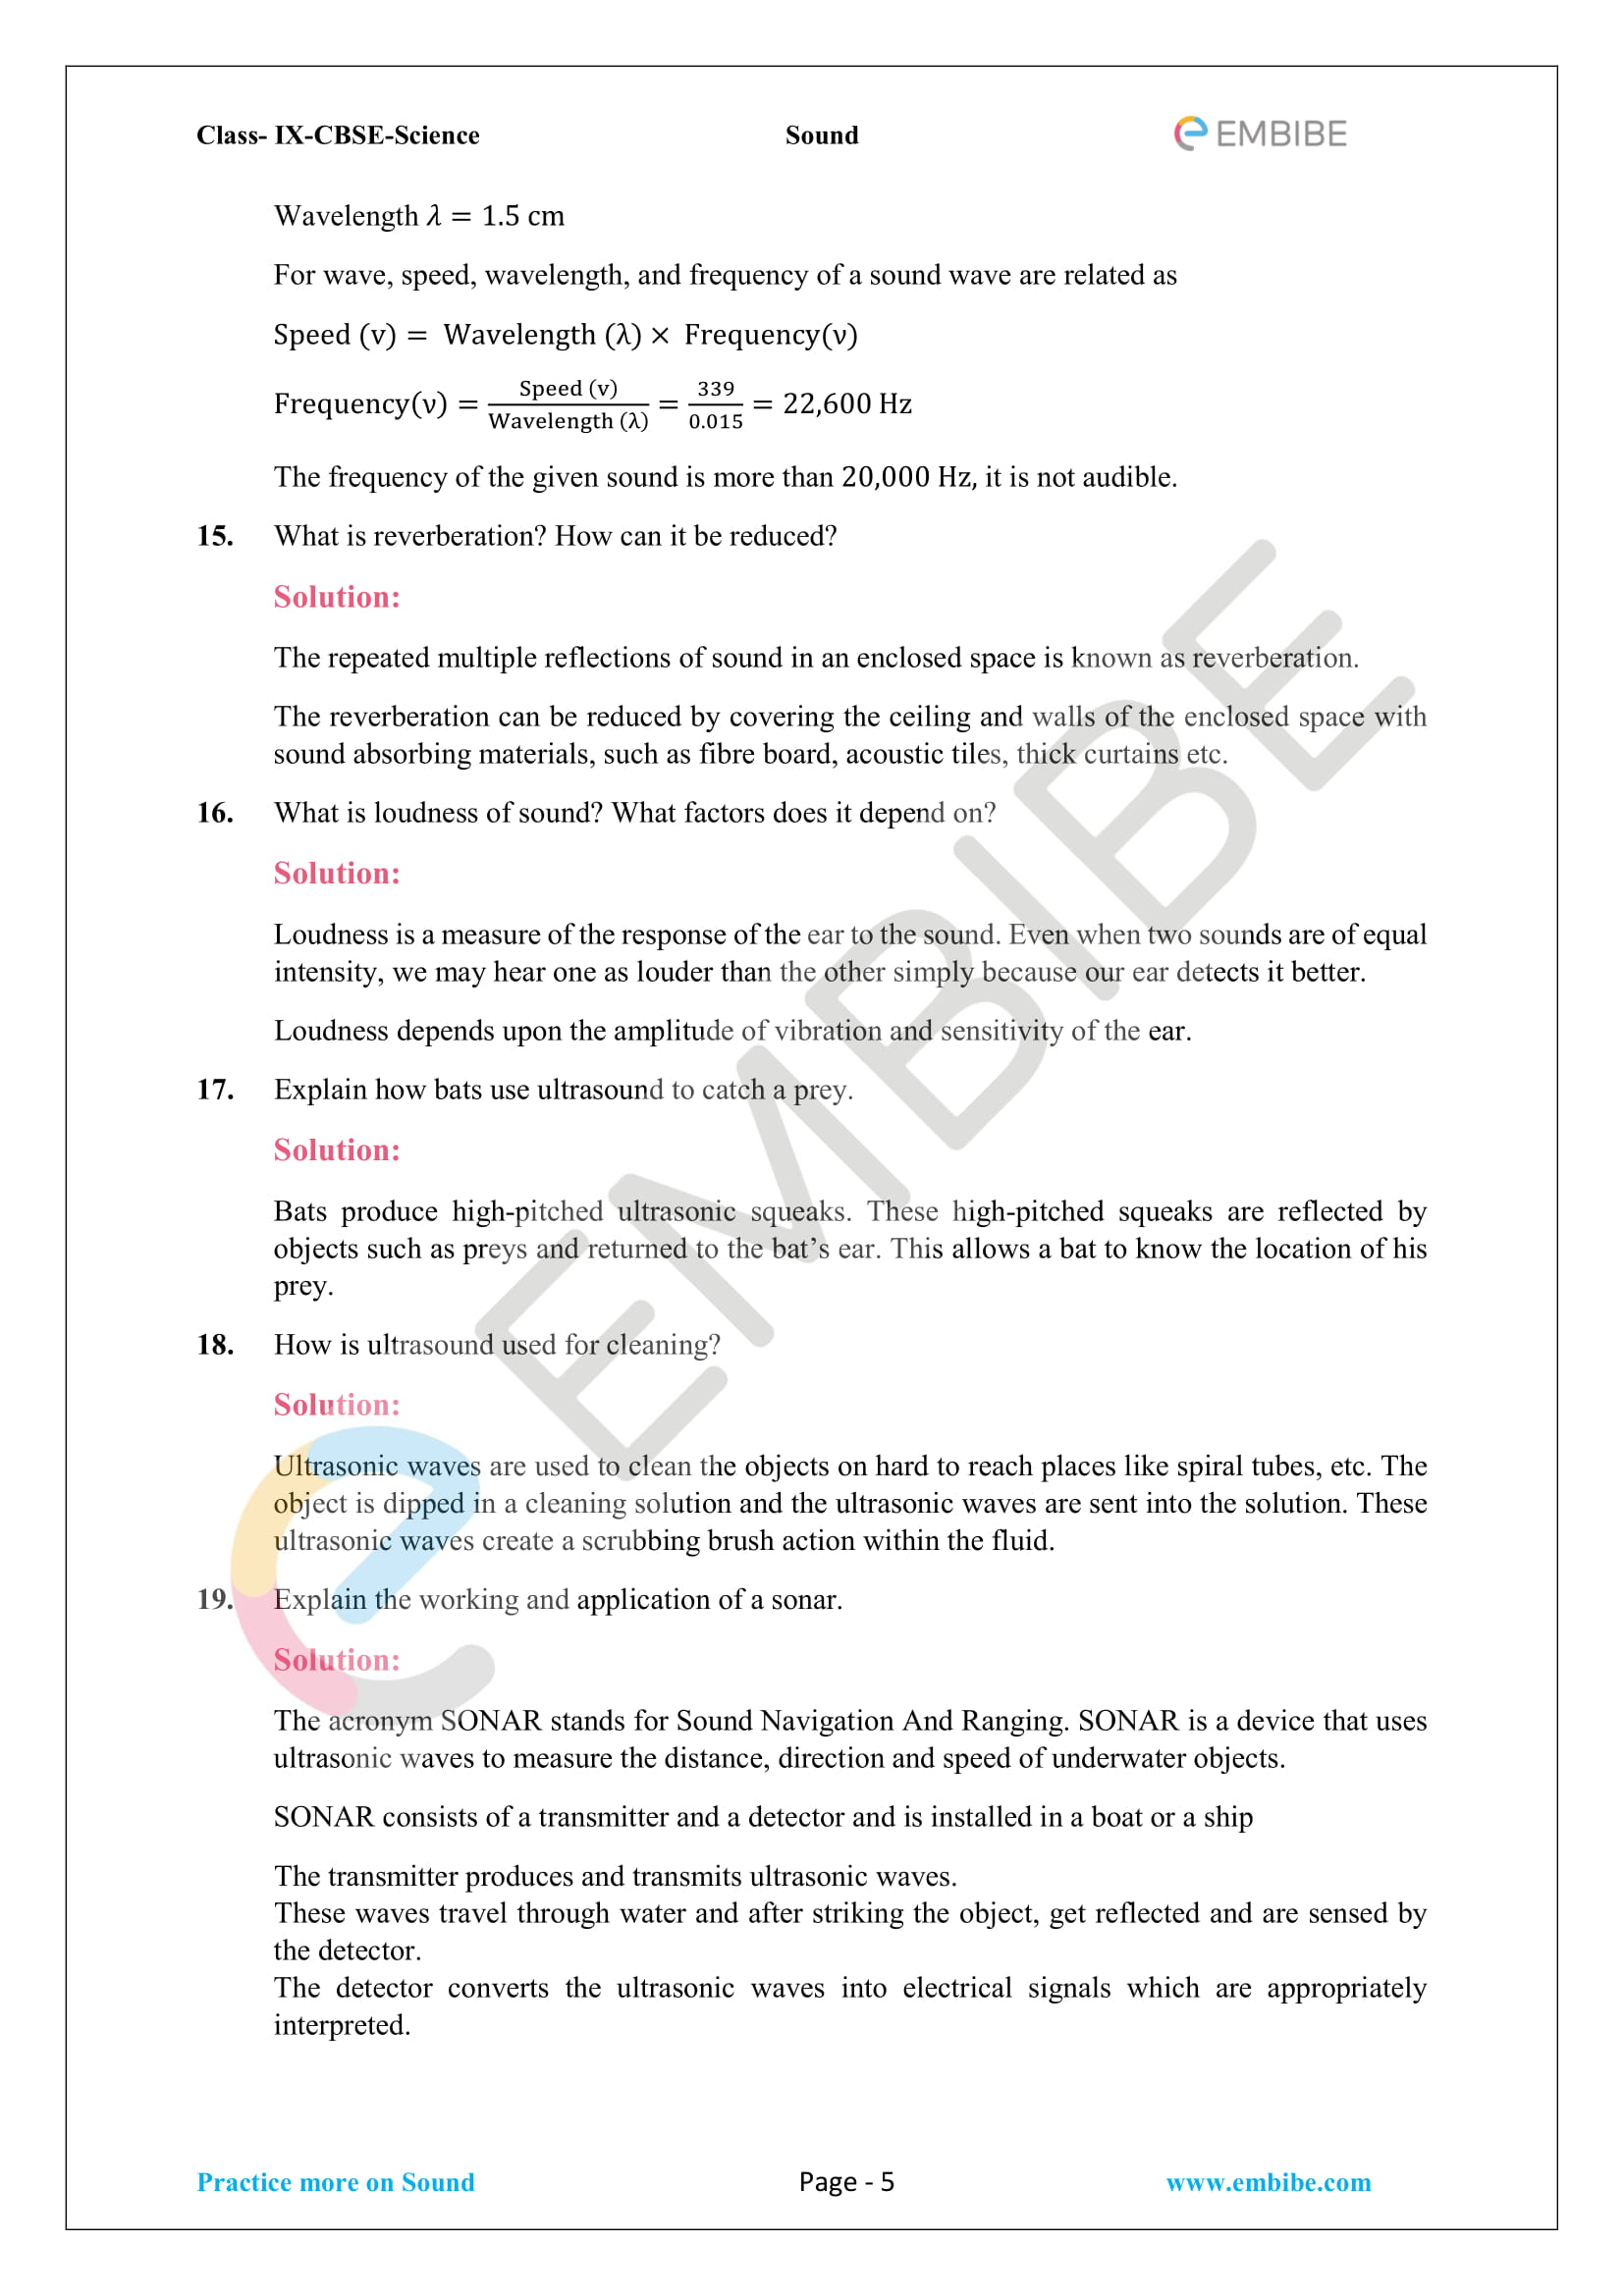 CBSE NCERT Solutions For Class 9 Science Chapter 12 - Sound - 5